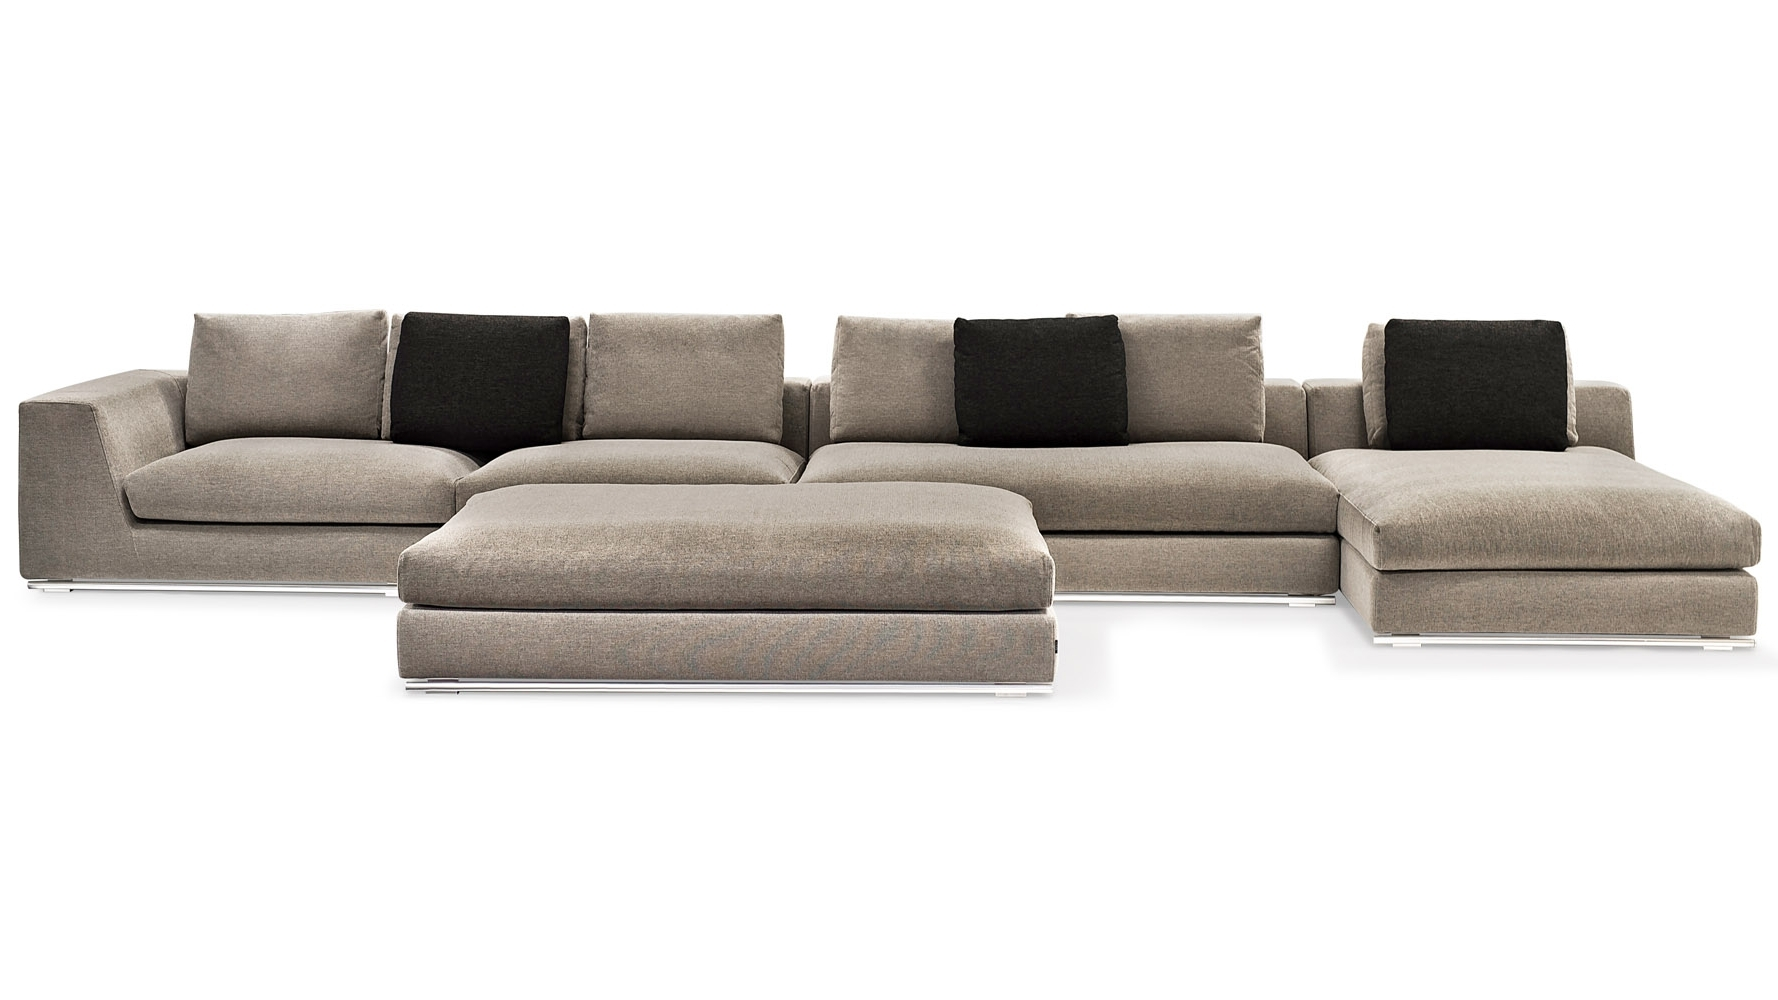 Newest Armless Sectional Sofas Throughout Comodo Sectional Sofa With Ottoman – Grey (View 12 of 20)